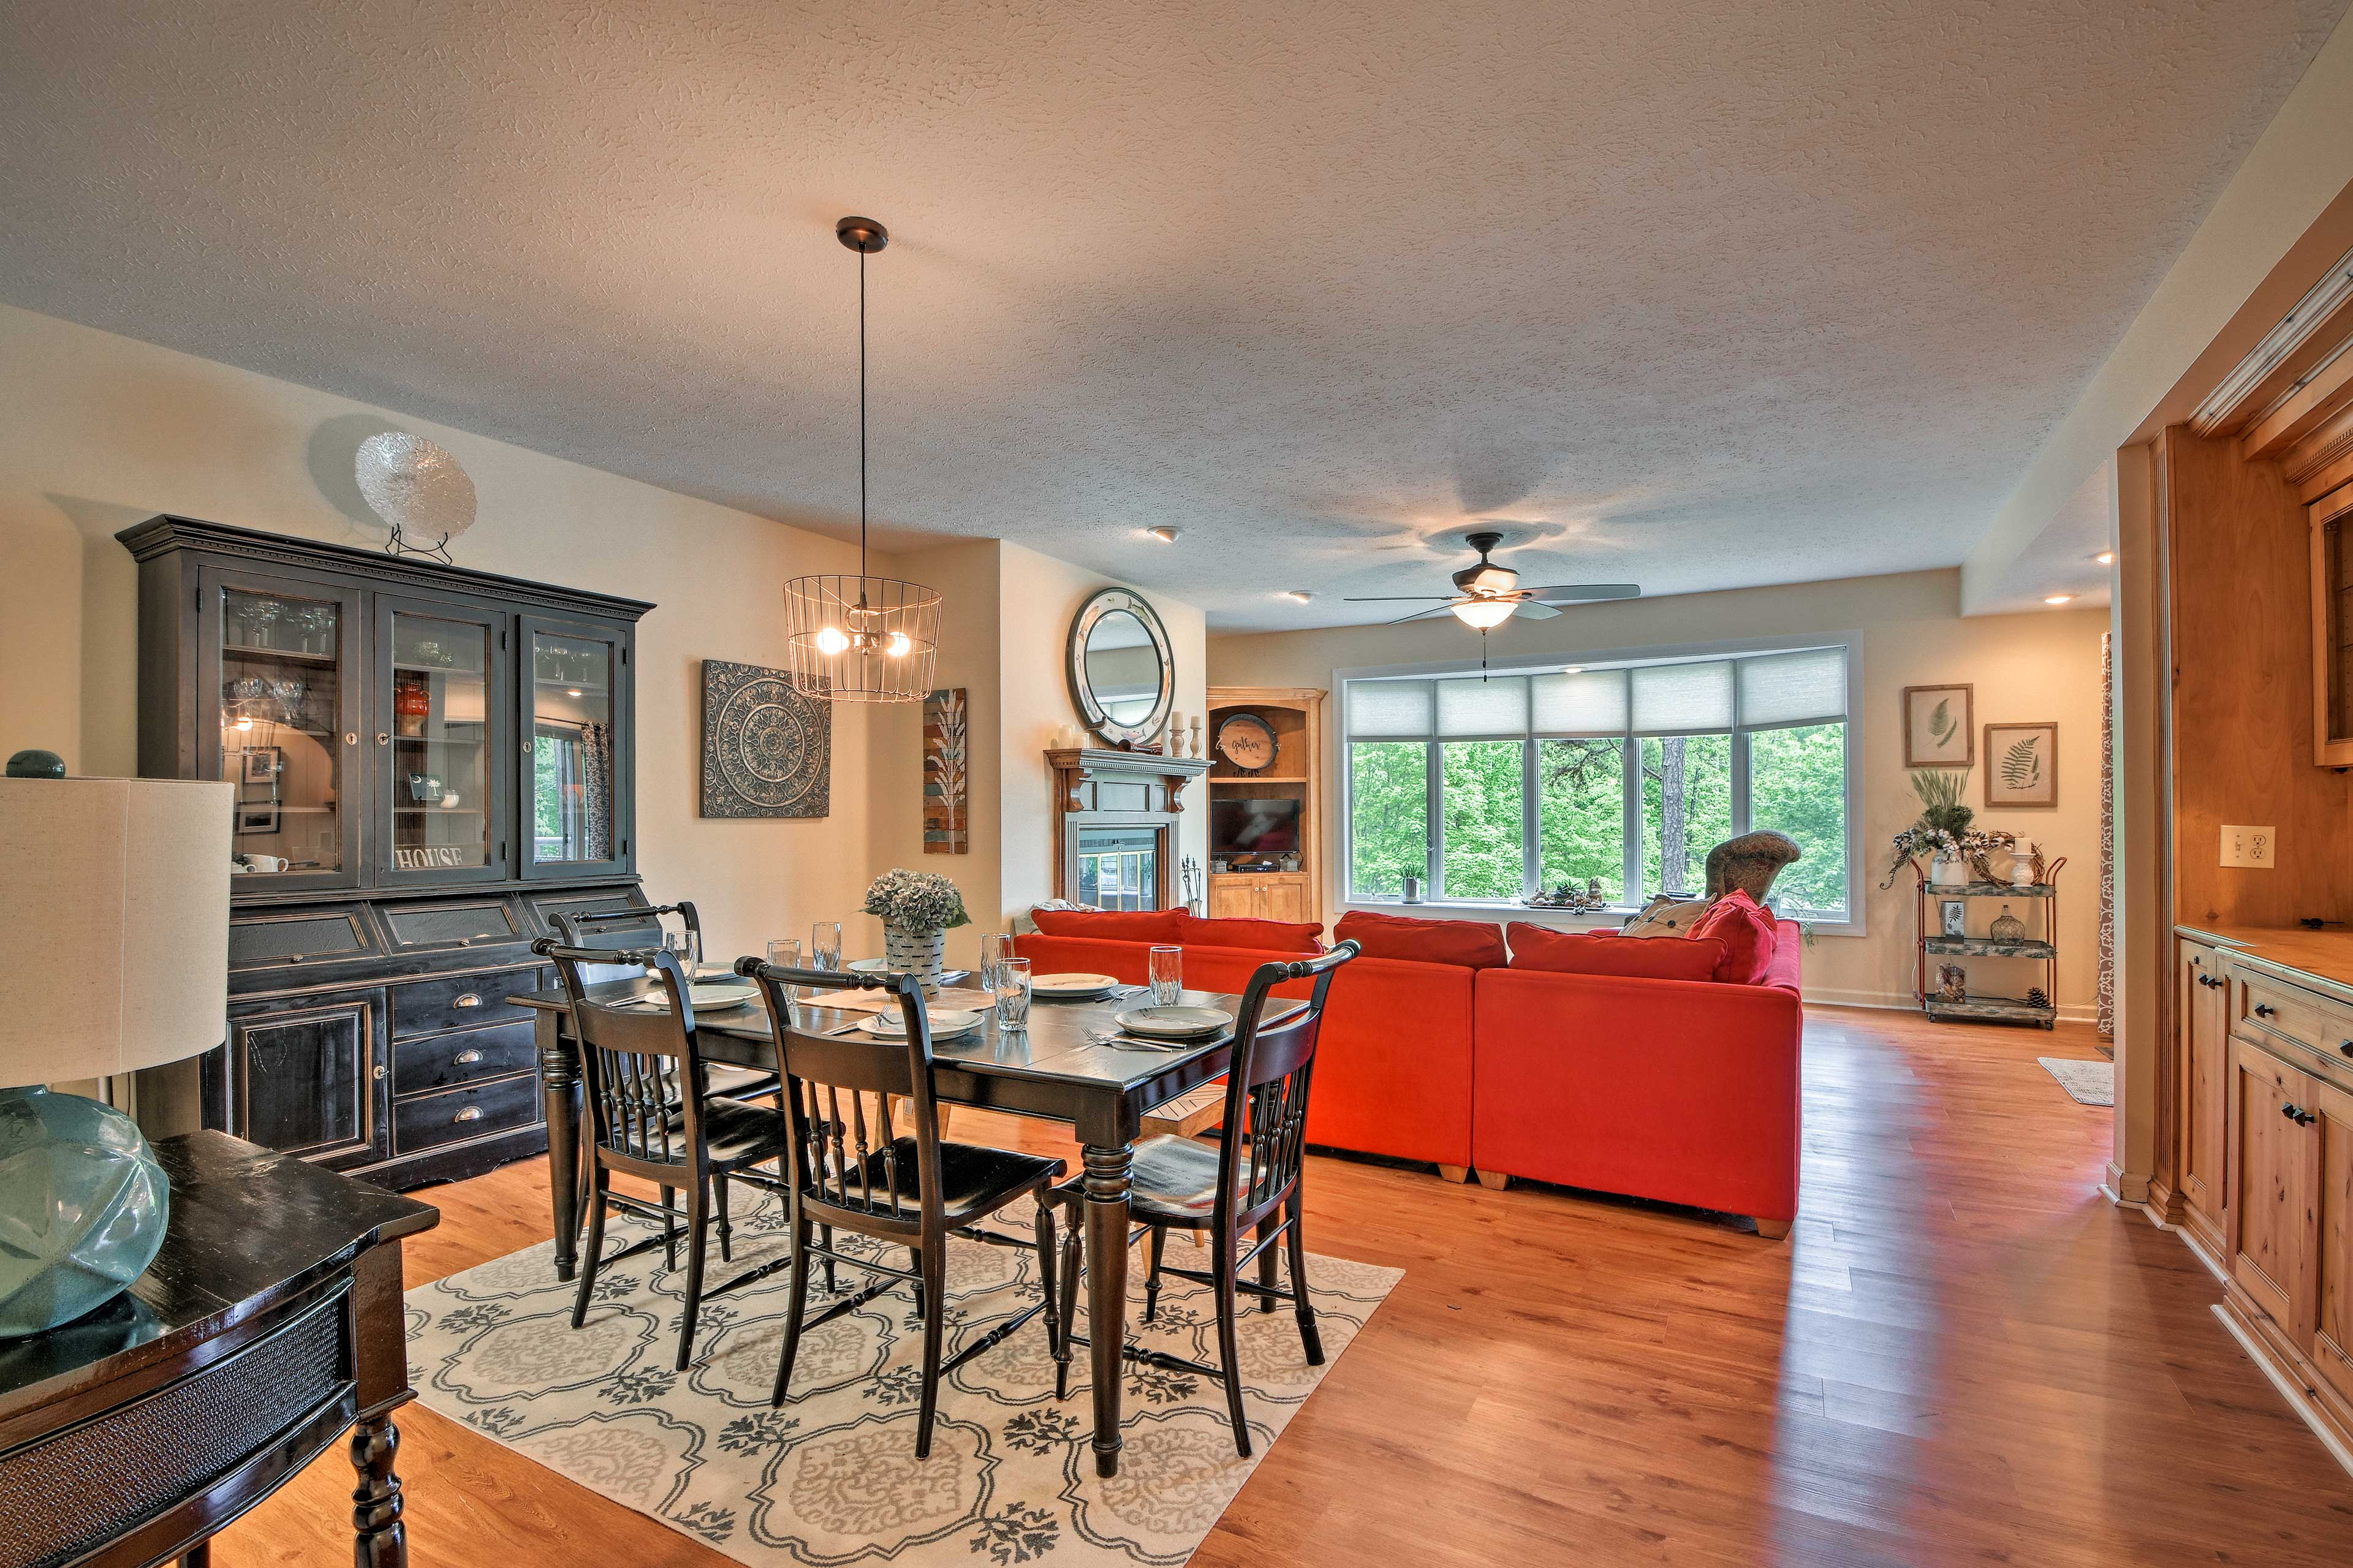 Gather around the formal dining table to enjoy a home-cooked meal.